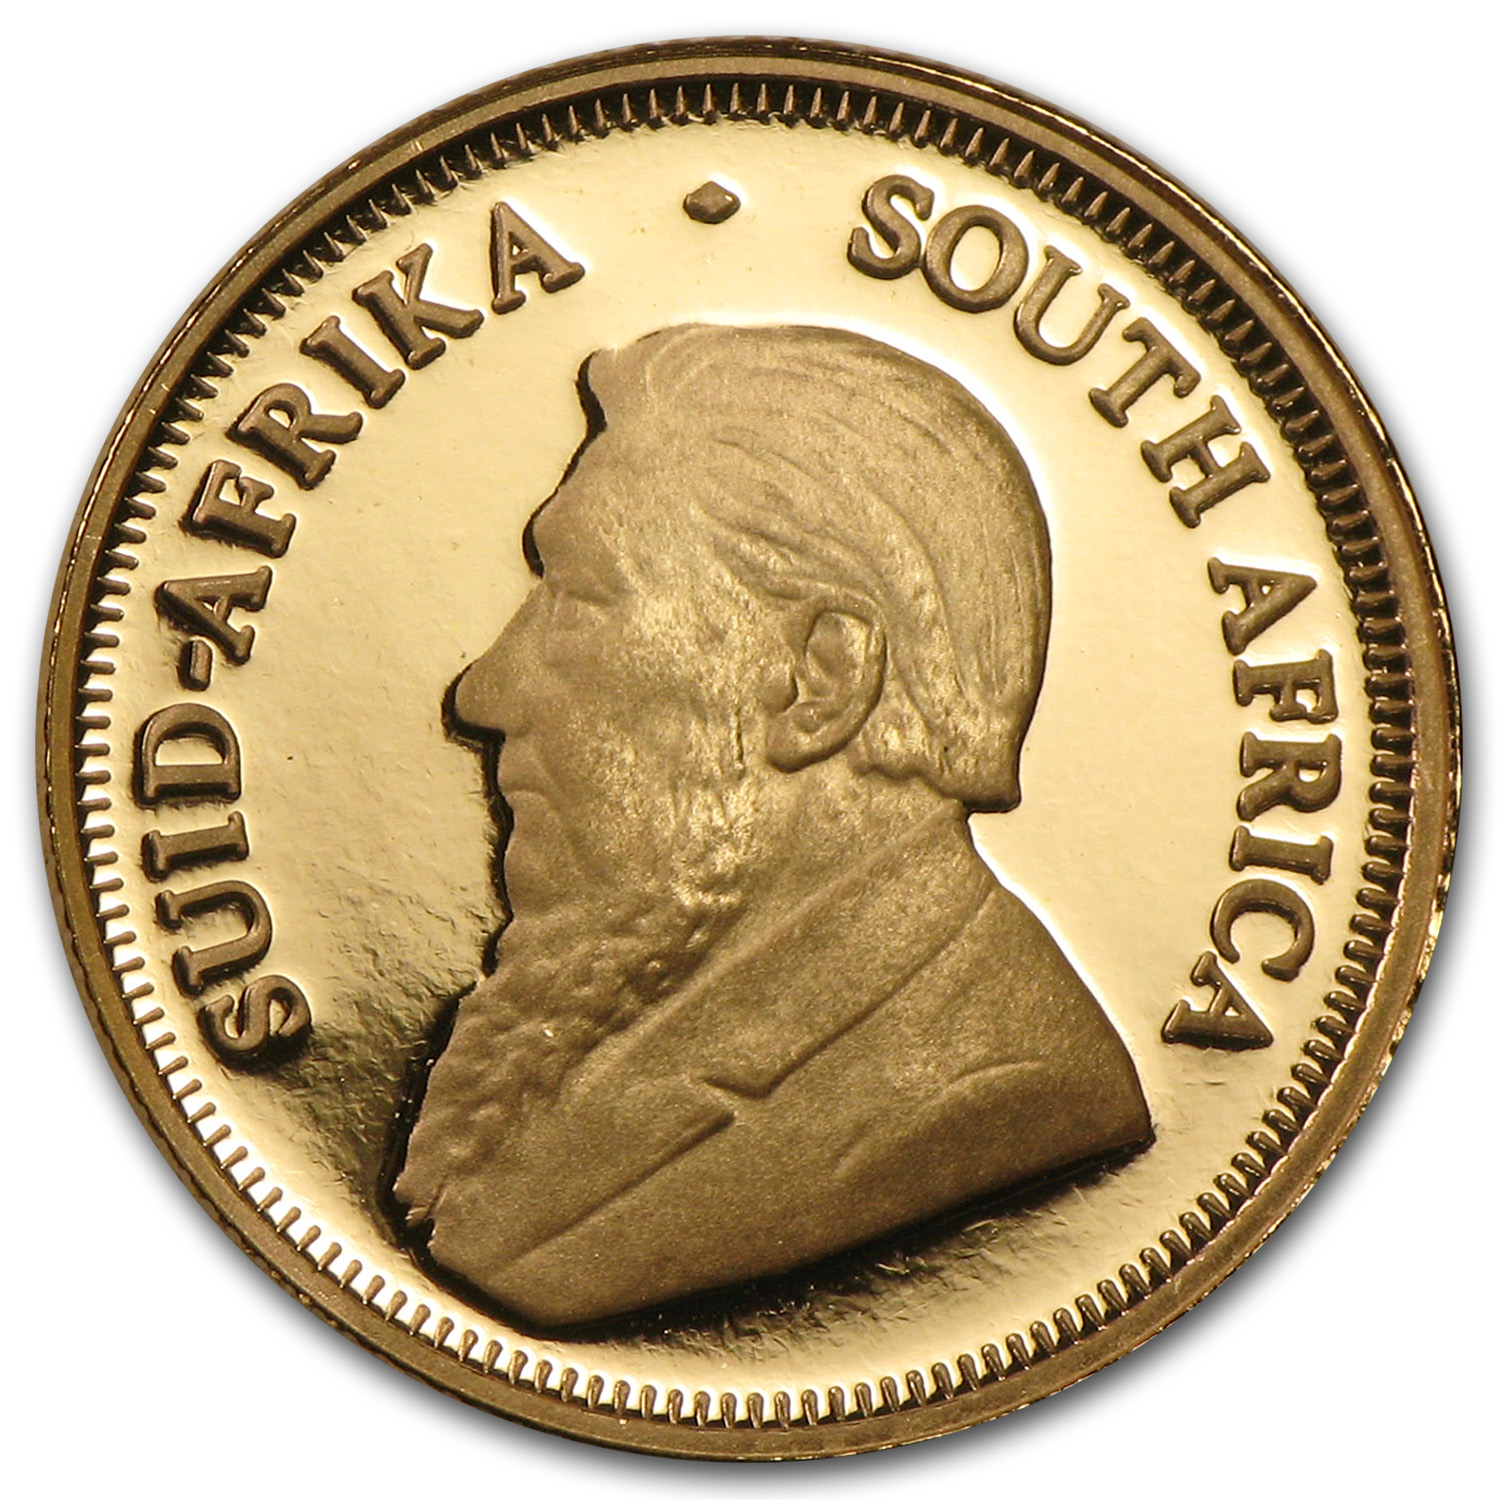 2009 South Africa 1/10 oz Proof Gold Krugerrand